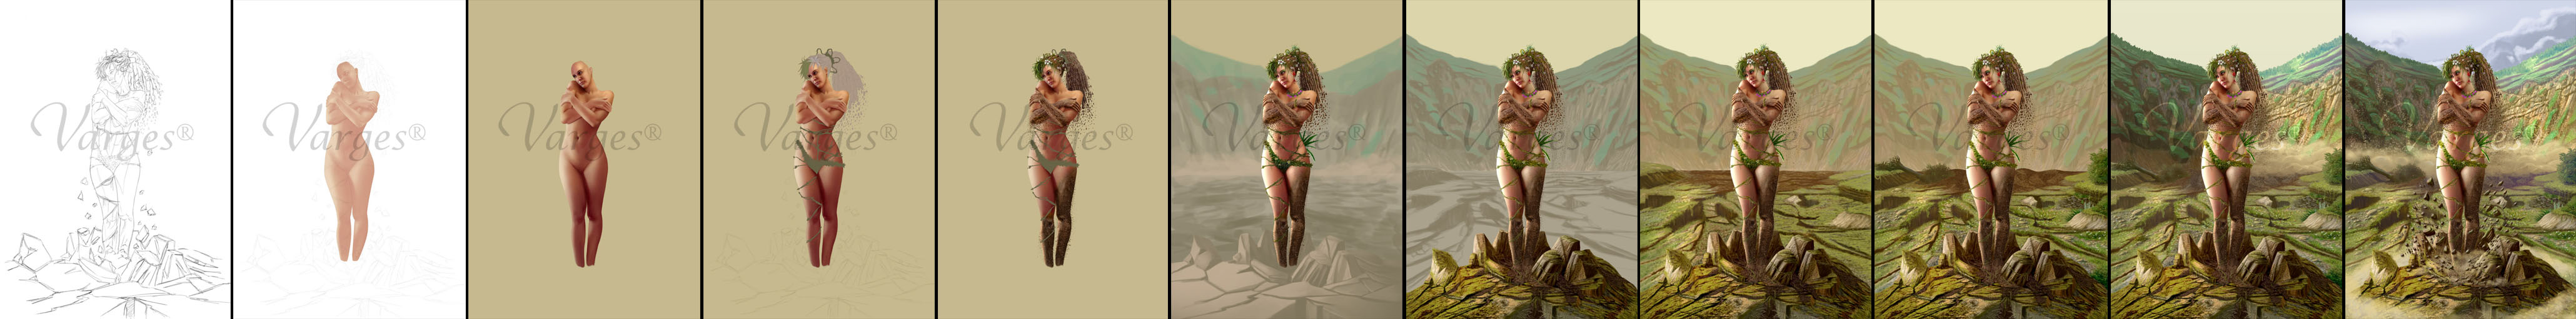 The 4 Elements - Earth - WIPs by Varges